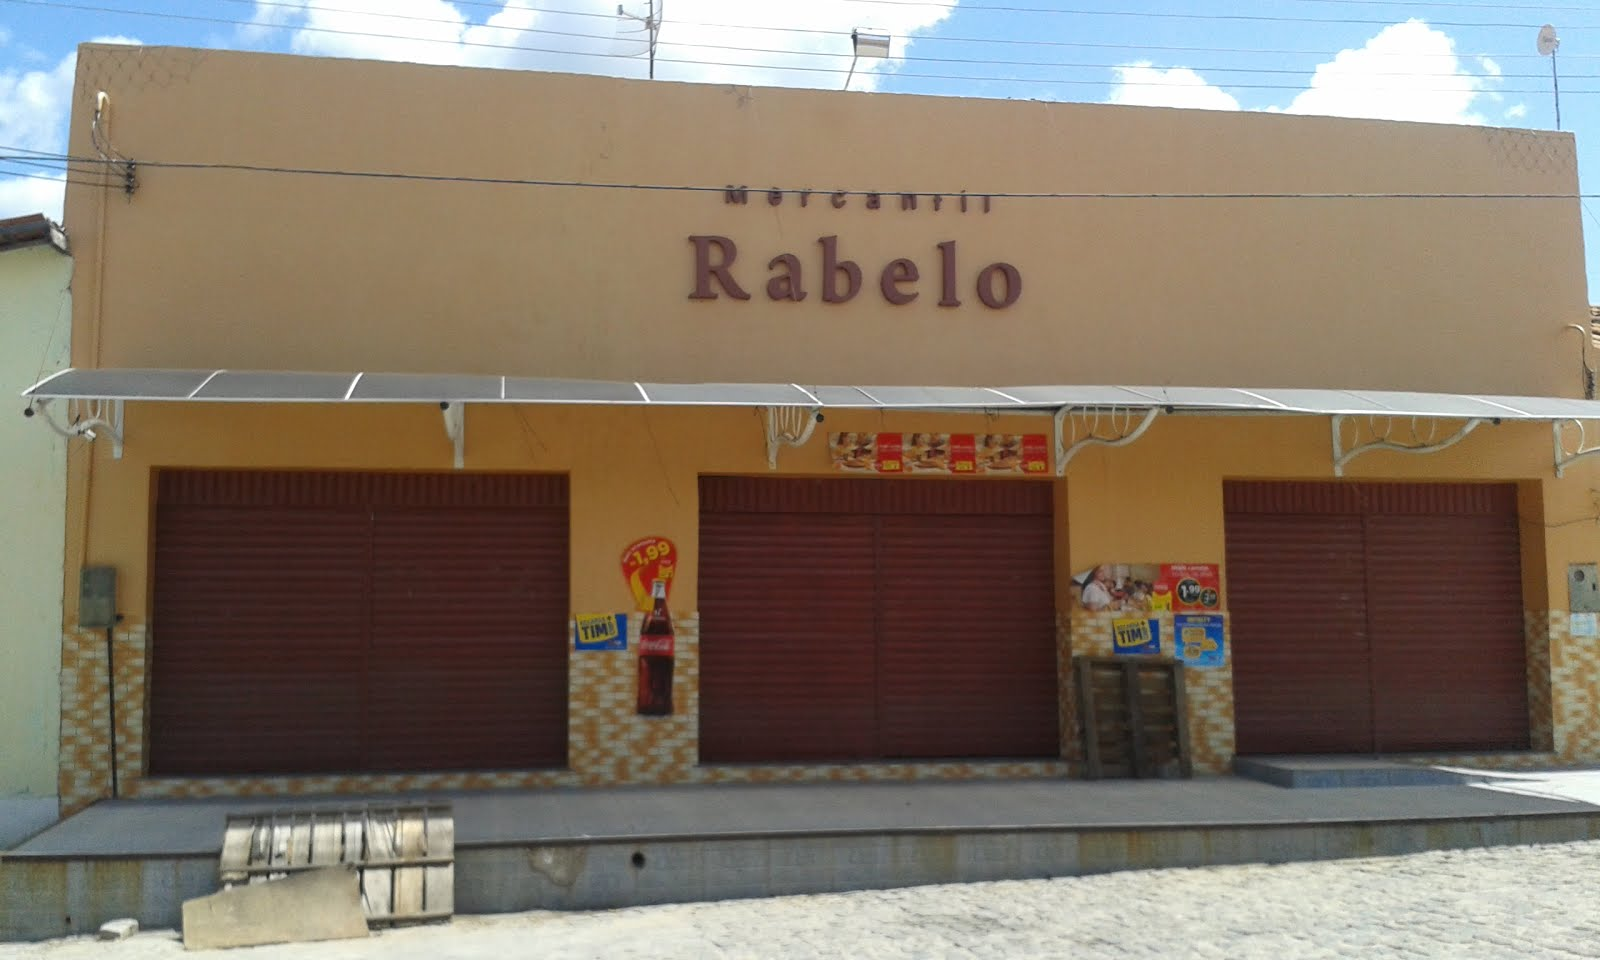 Marques Rabelo